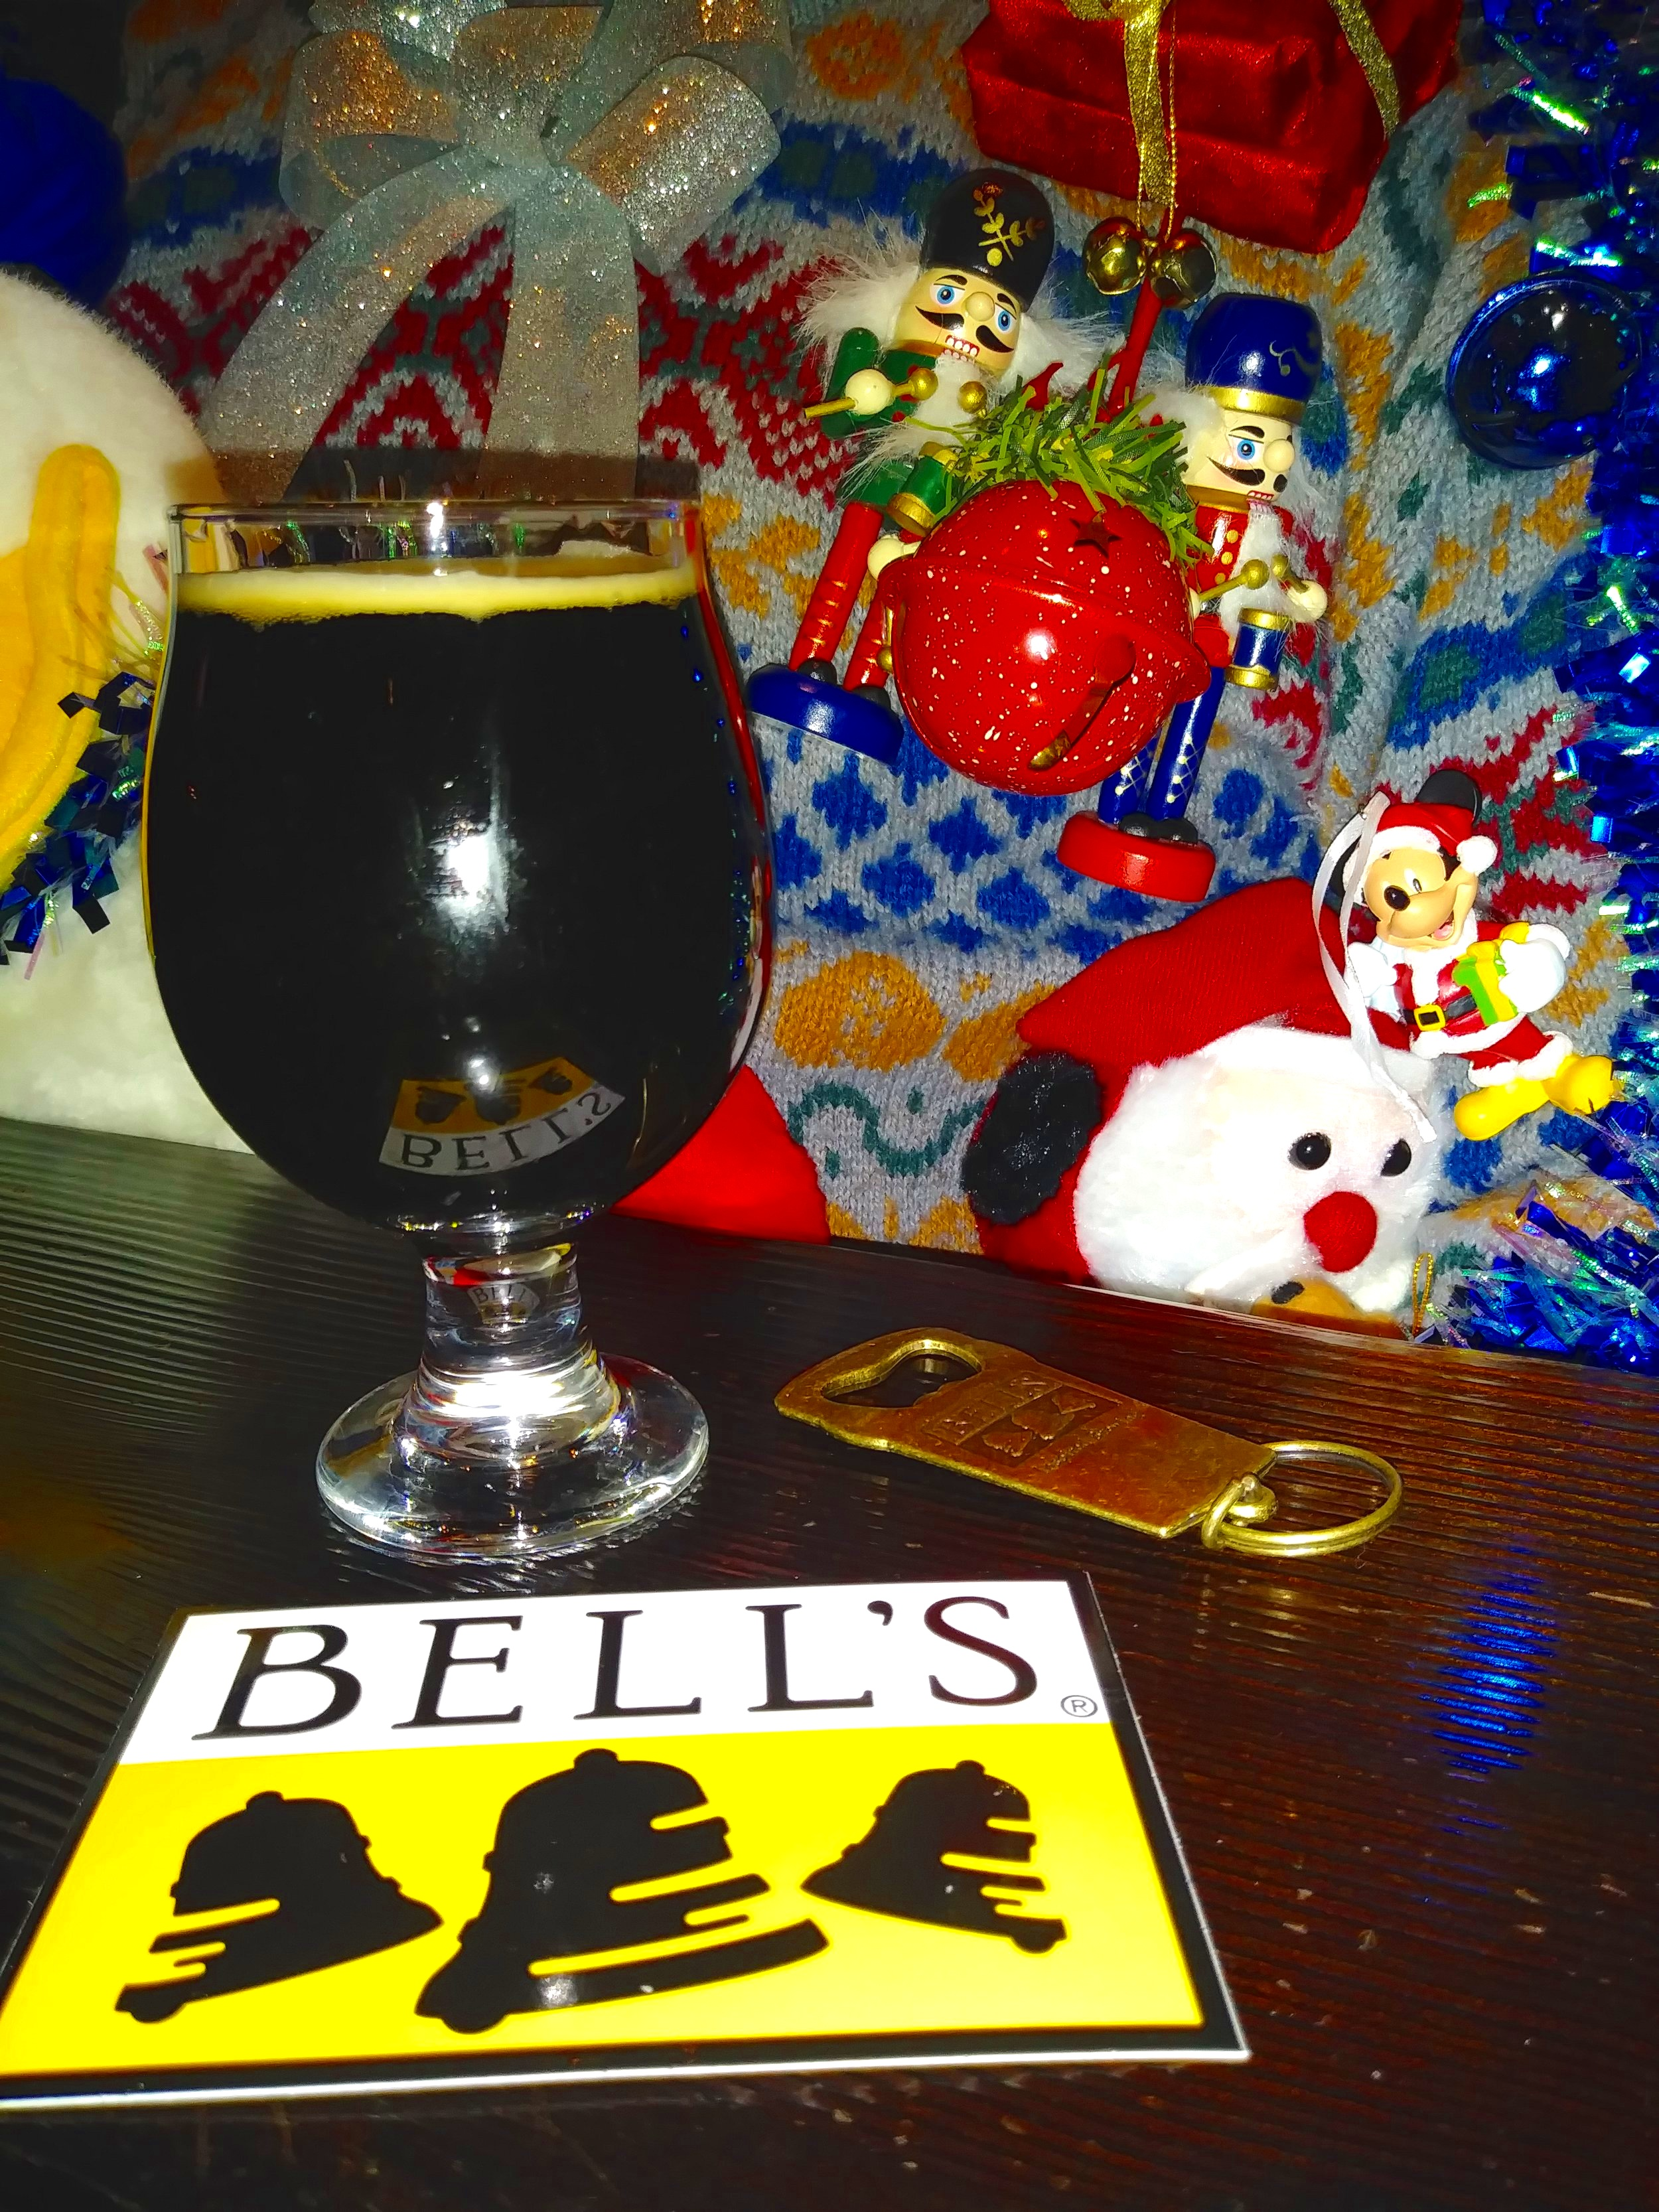 Bell's Bear Hug Stout with my Christmas sweater in the background. Does it look like the nut crackers aren't getting along?